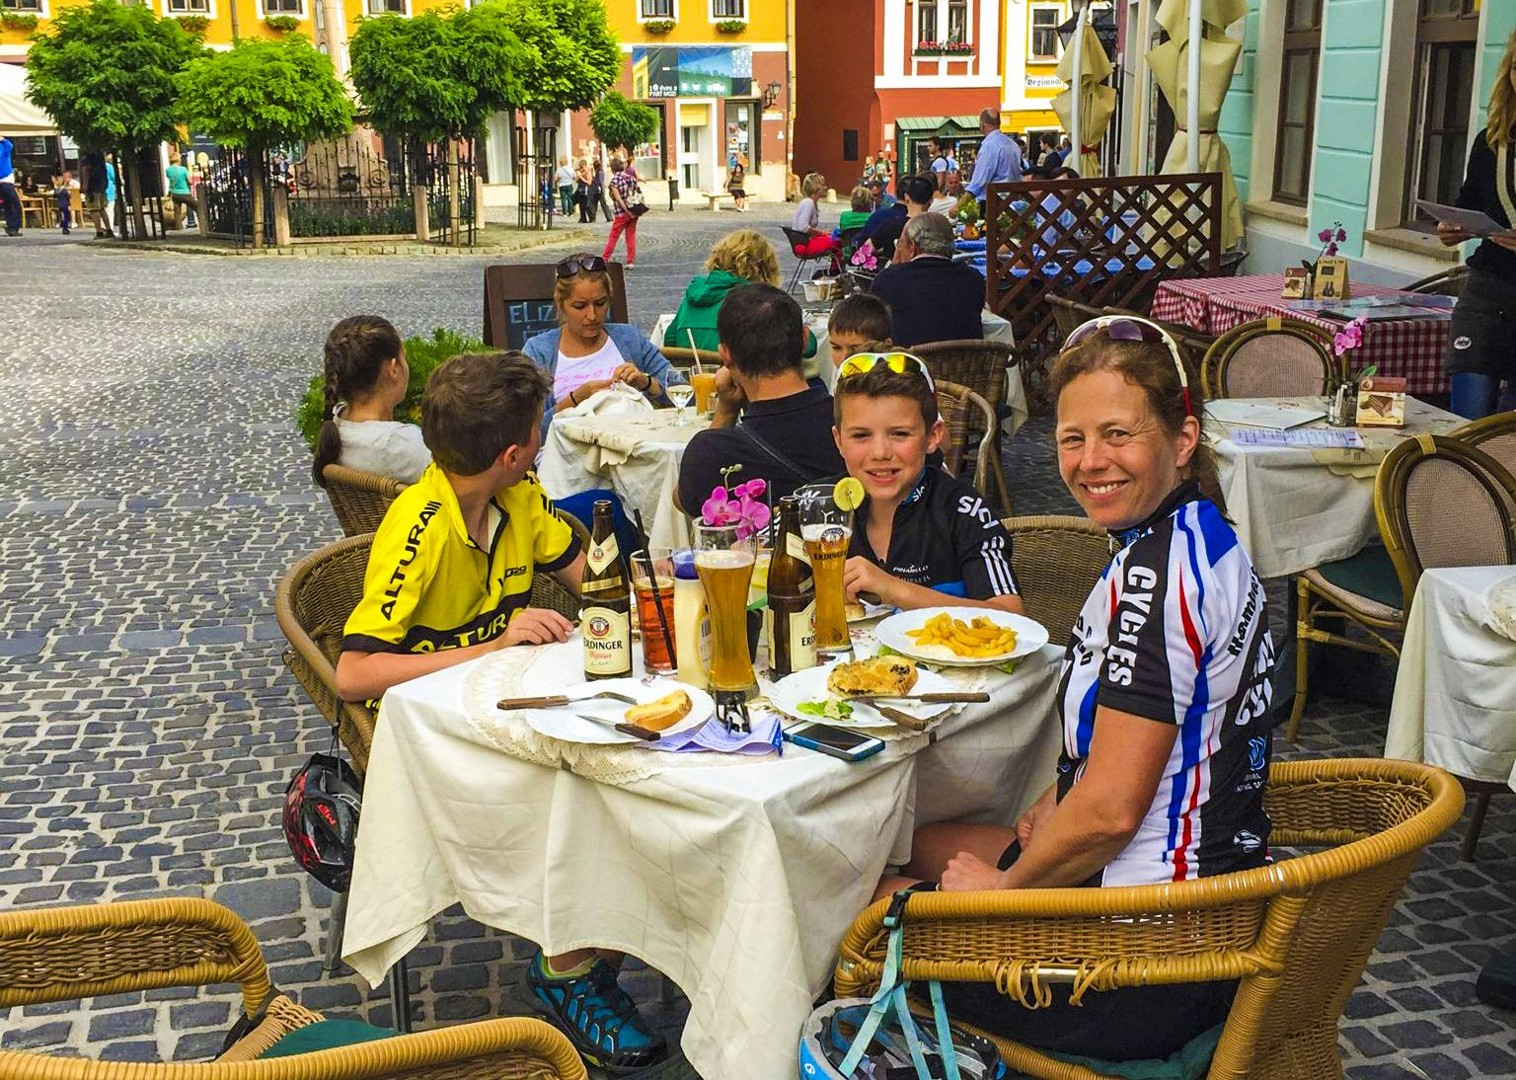 _Customer.16685.25949-2.jpg - Austria, Slovakia and Hungary - Vienna to Budapest - Self-Guided Family Cycling Holiday - Family Cycling